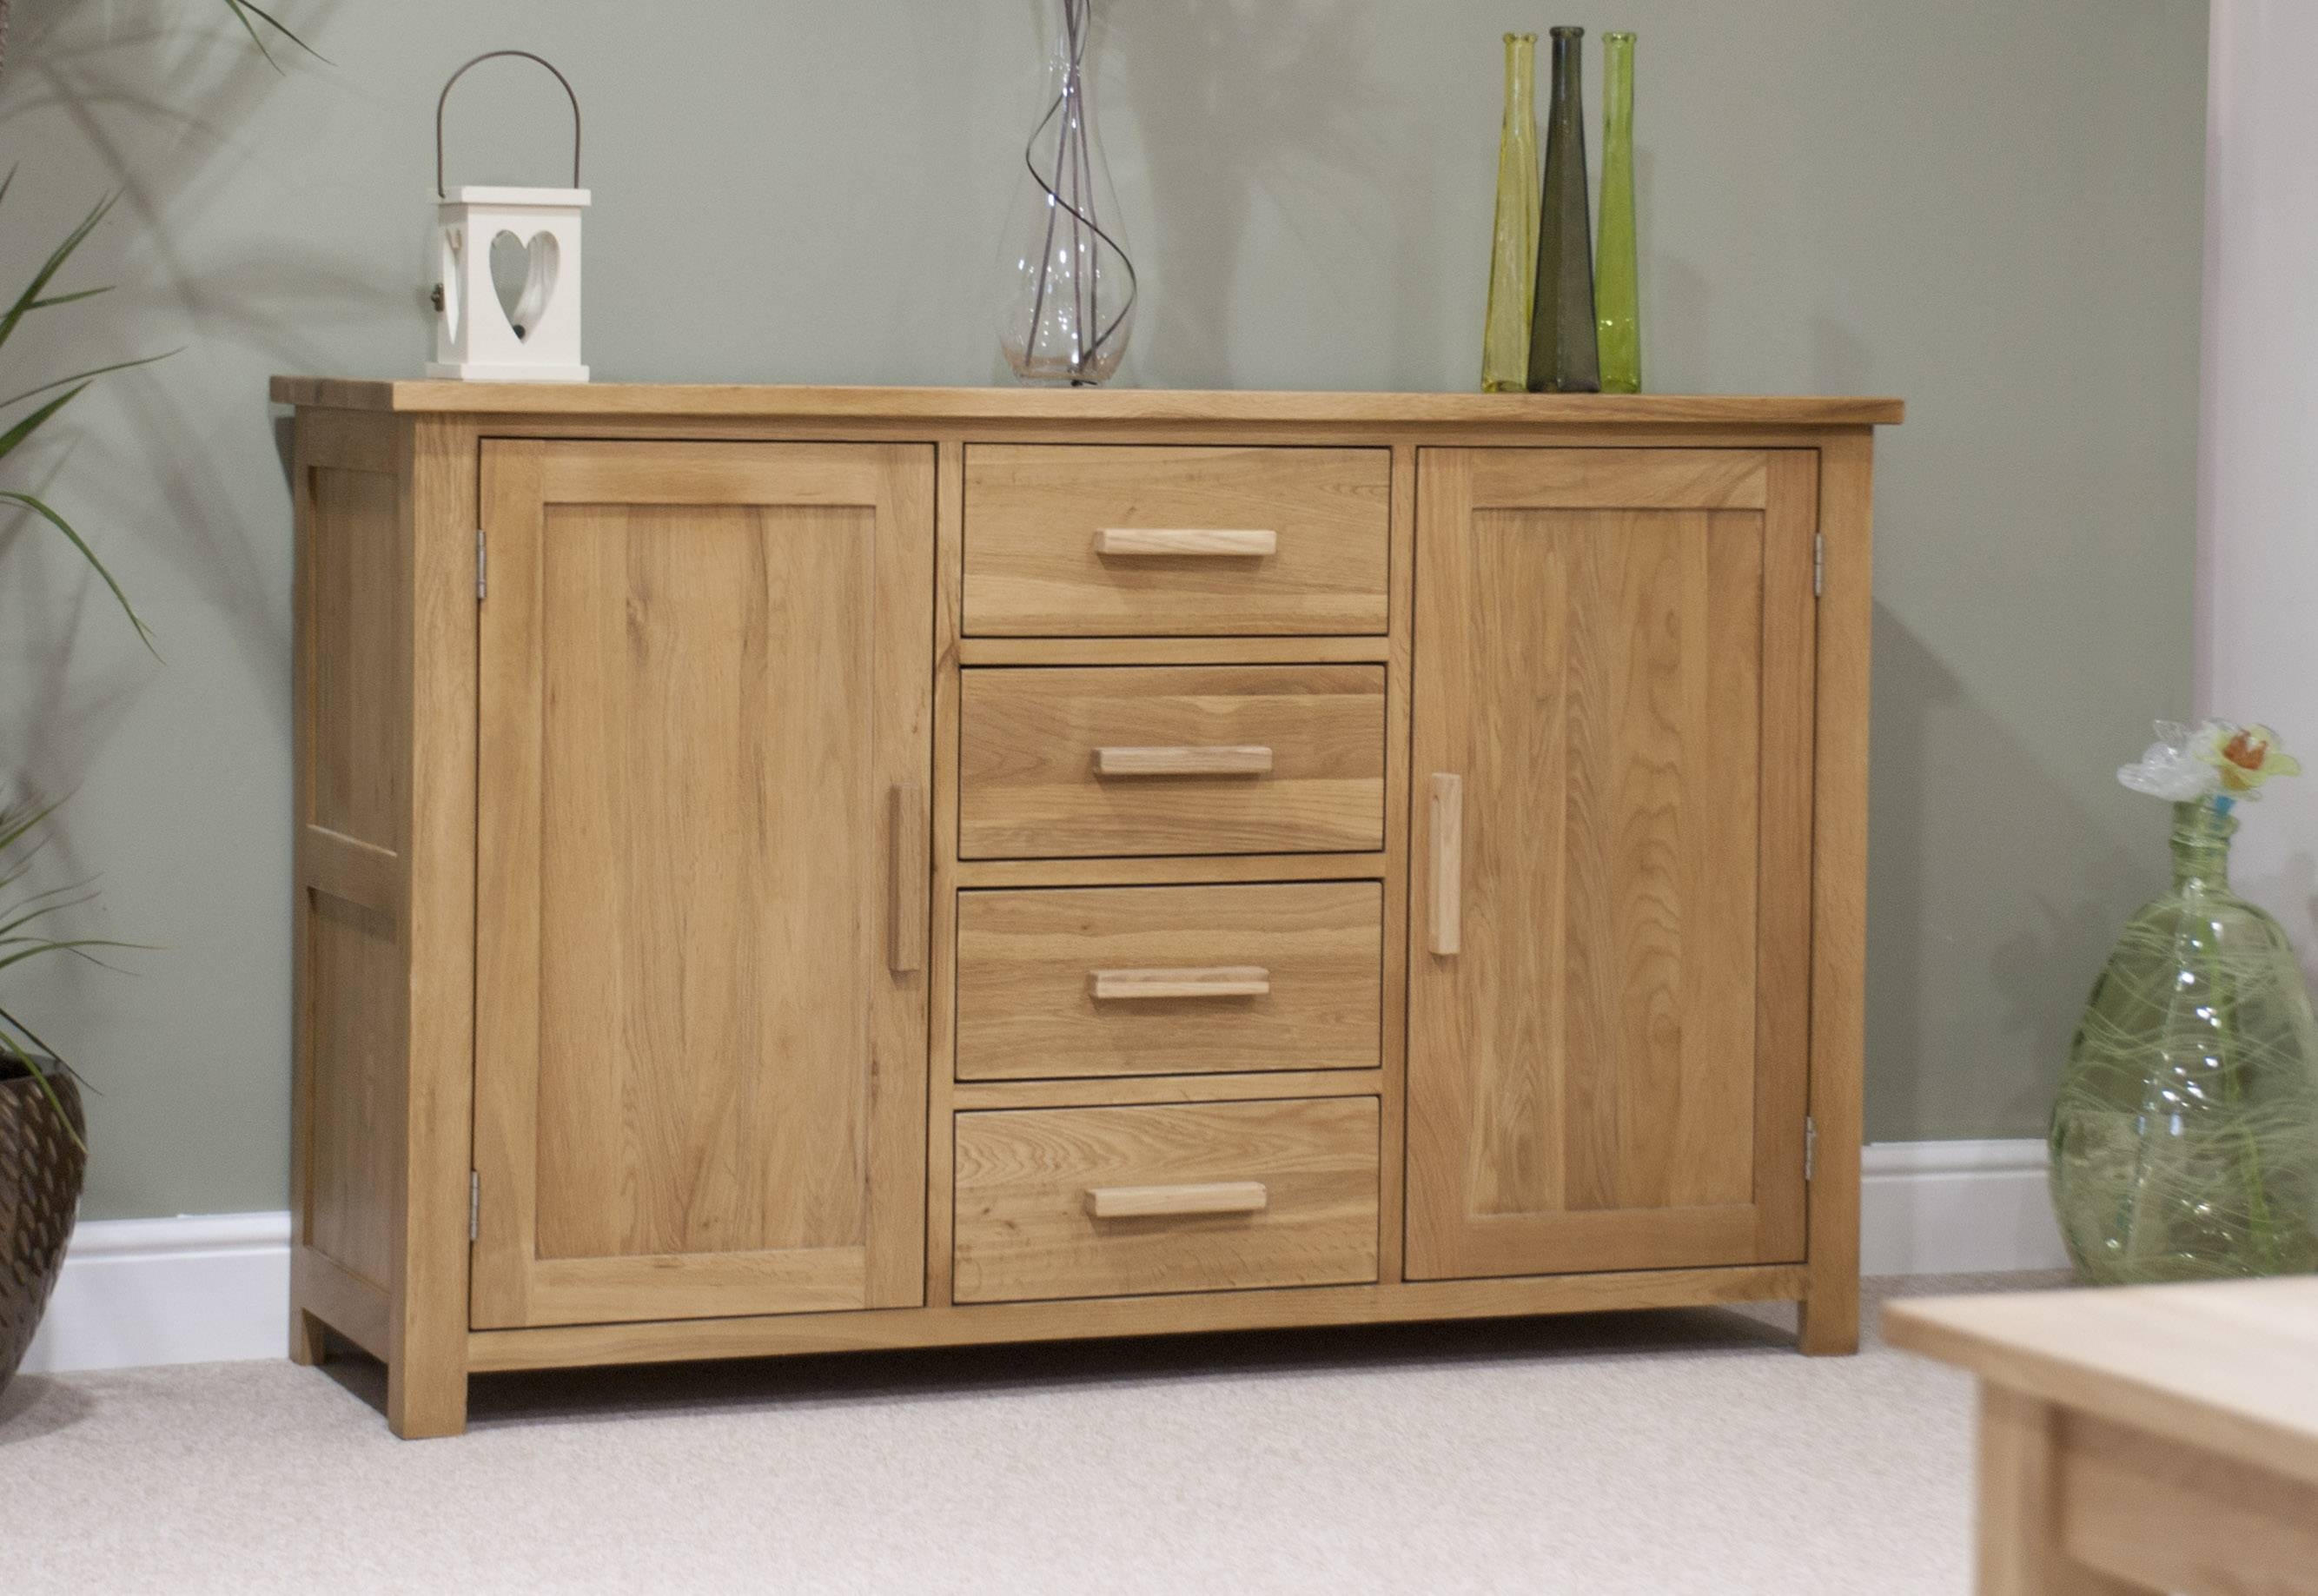 Fantastic Furniture | Pine And Oak | Furniture Workshoppe For Large Oak Sideboards (#5 of 15)